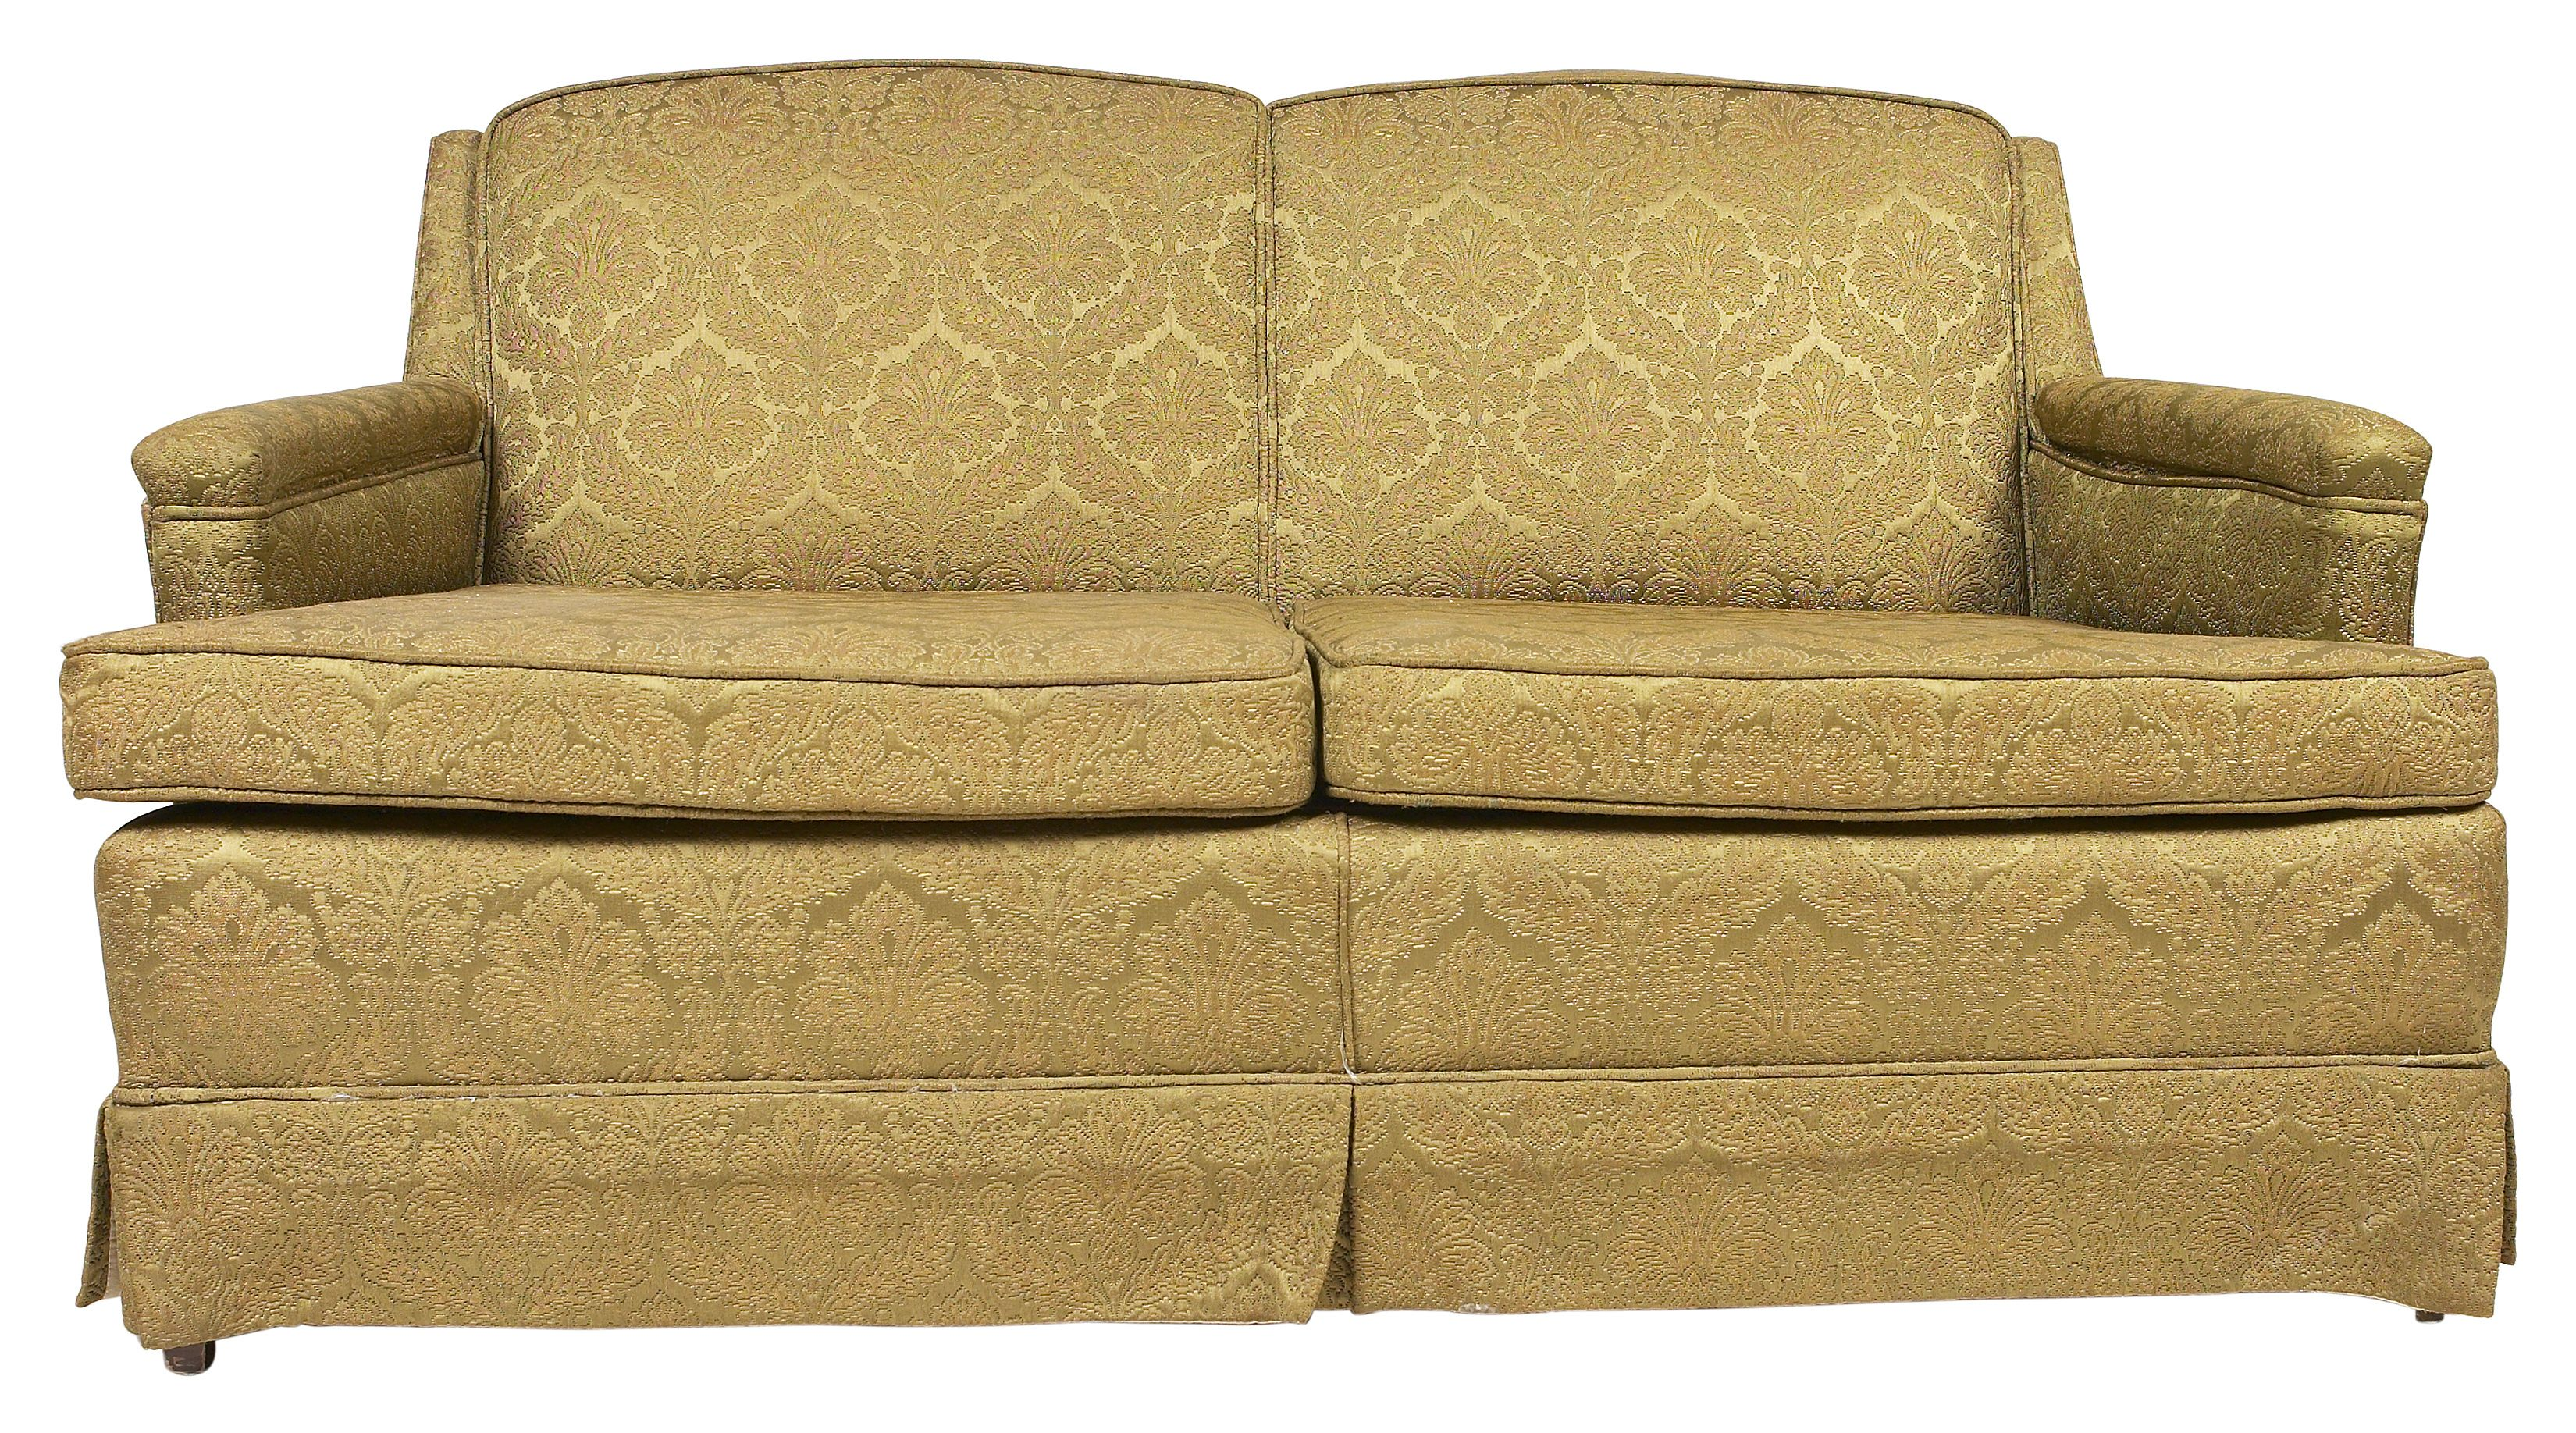 How Can You Decorate With a Taupe Sofa